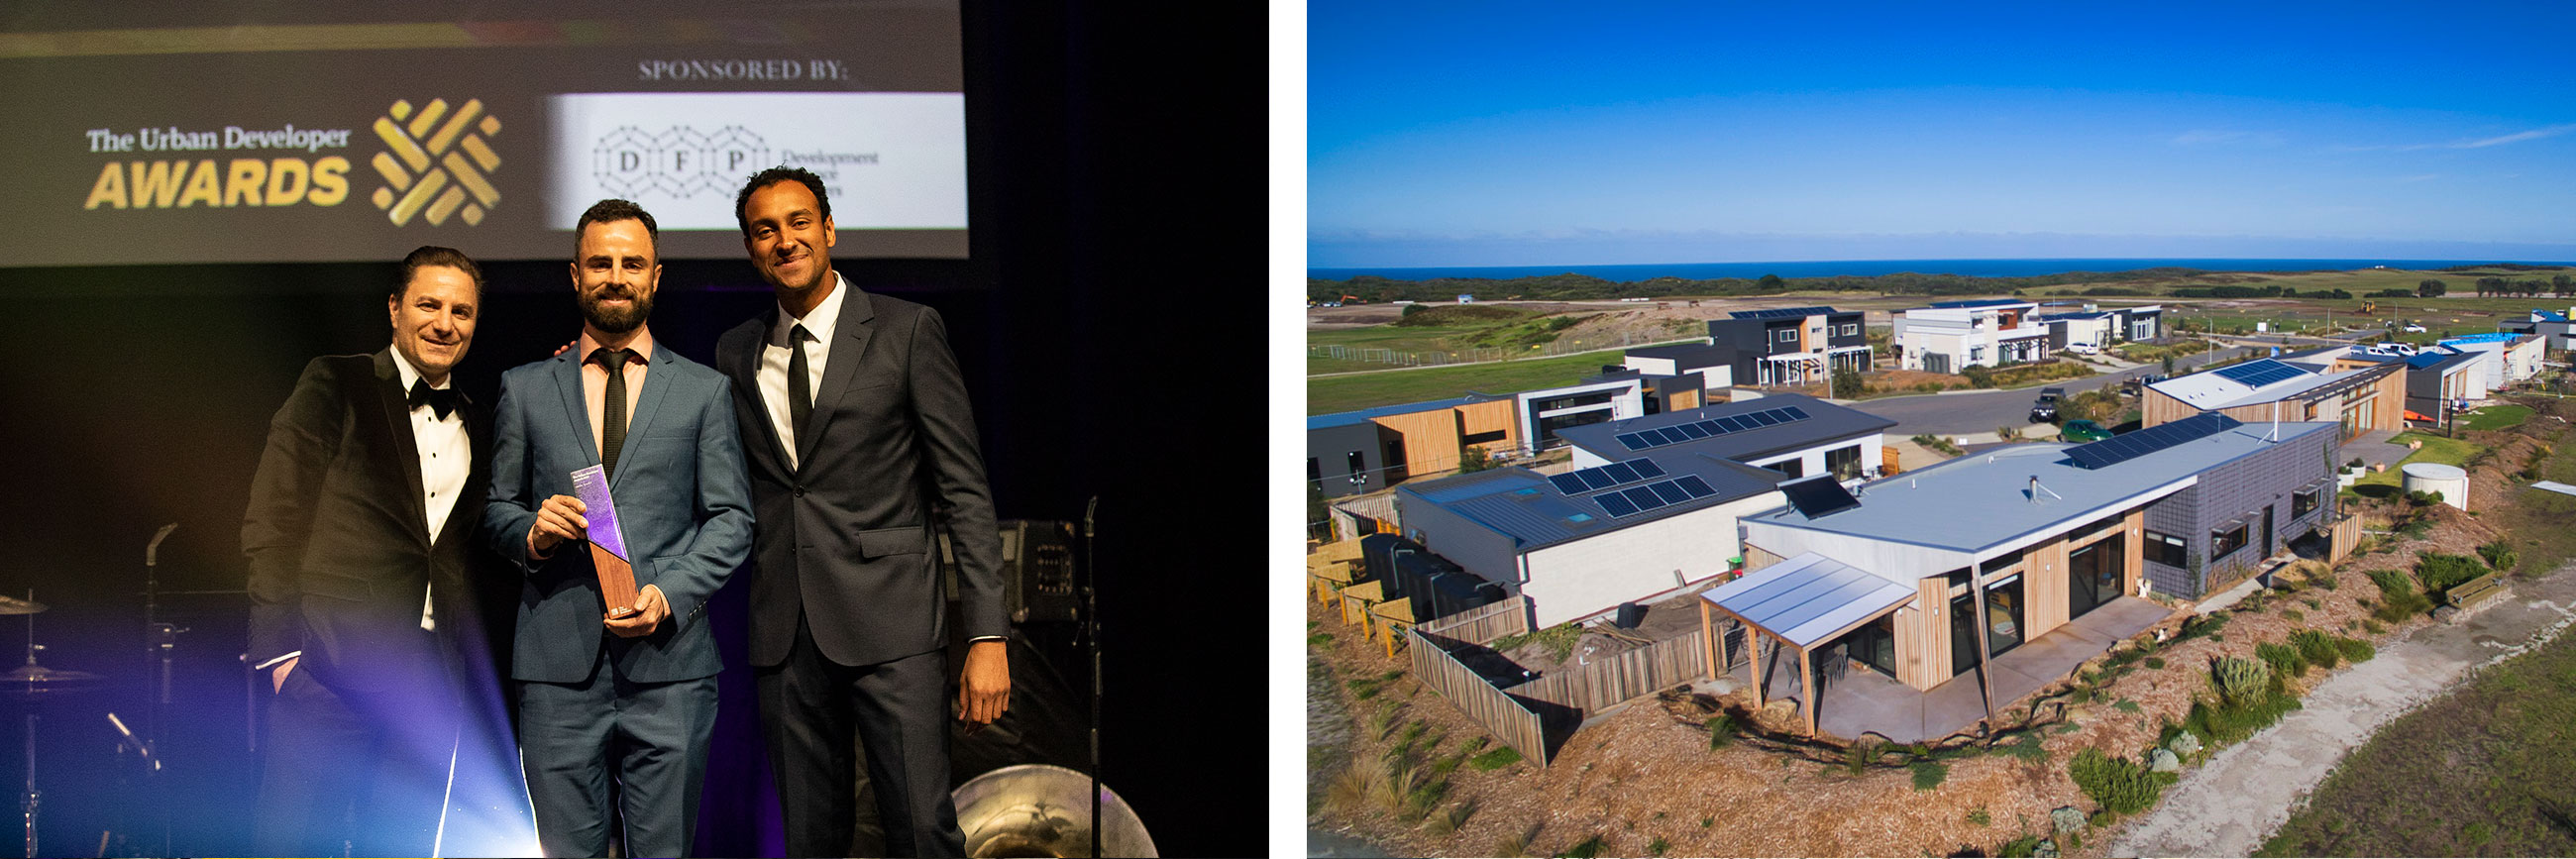 The judges recognised The Cape as Australia's first net zero carbon estate and the first to produce a surplus of renewable energy.